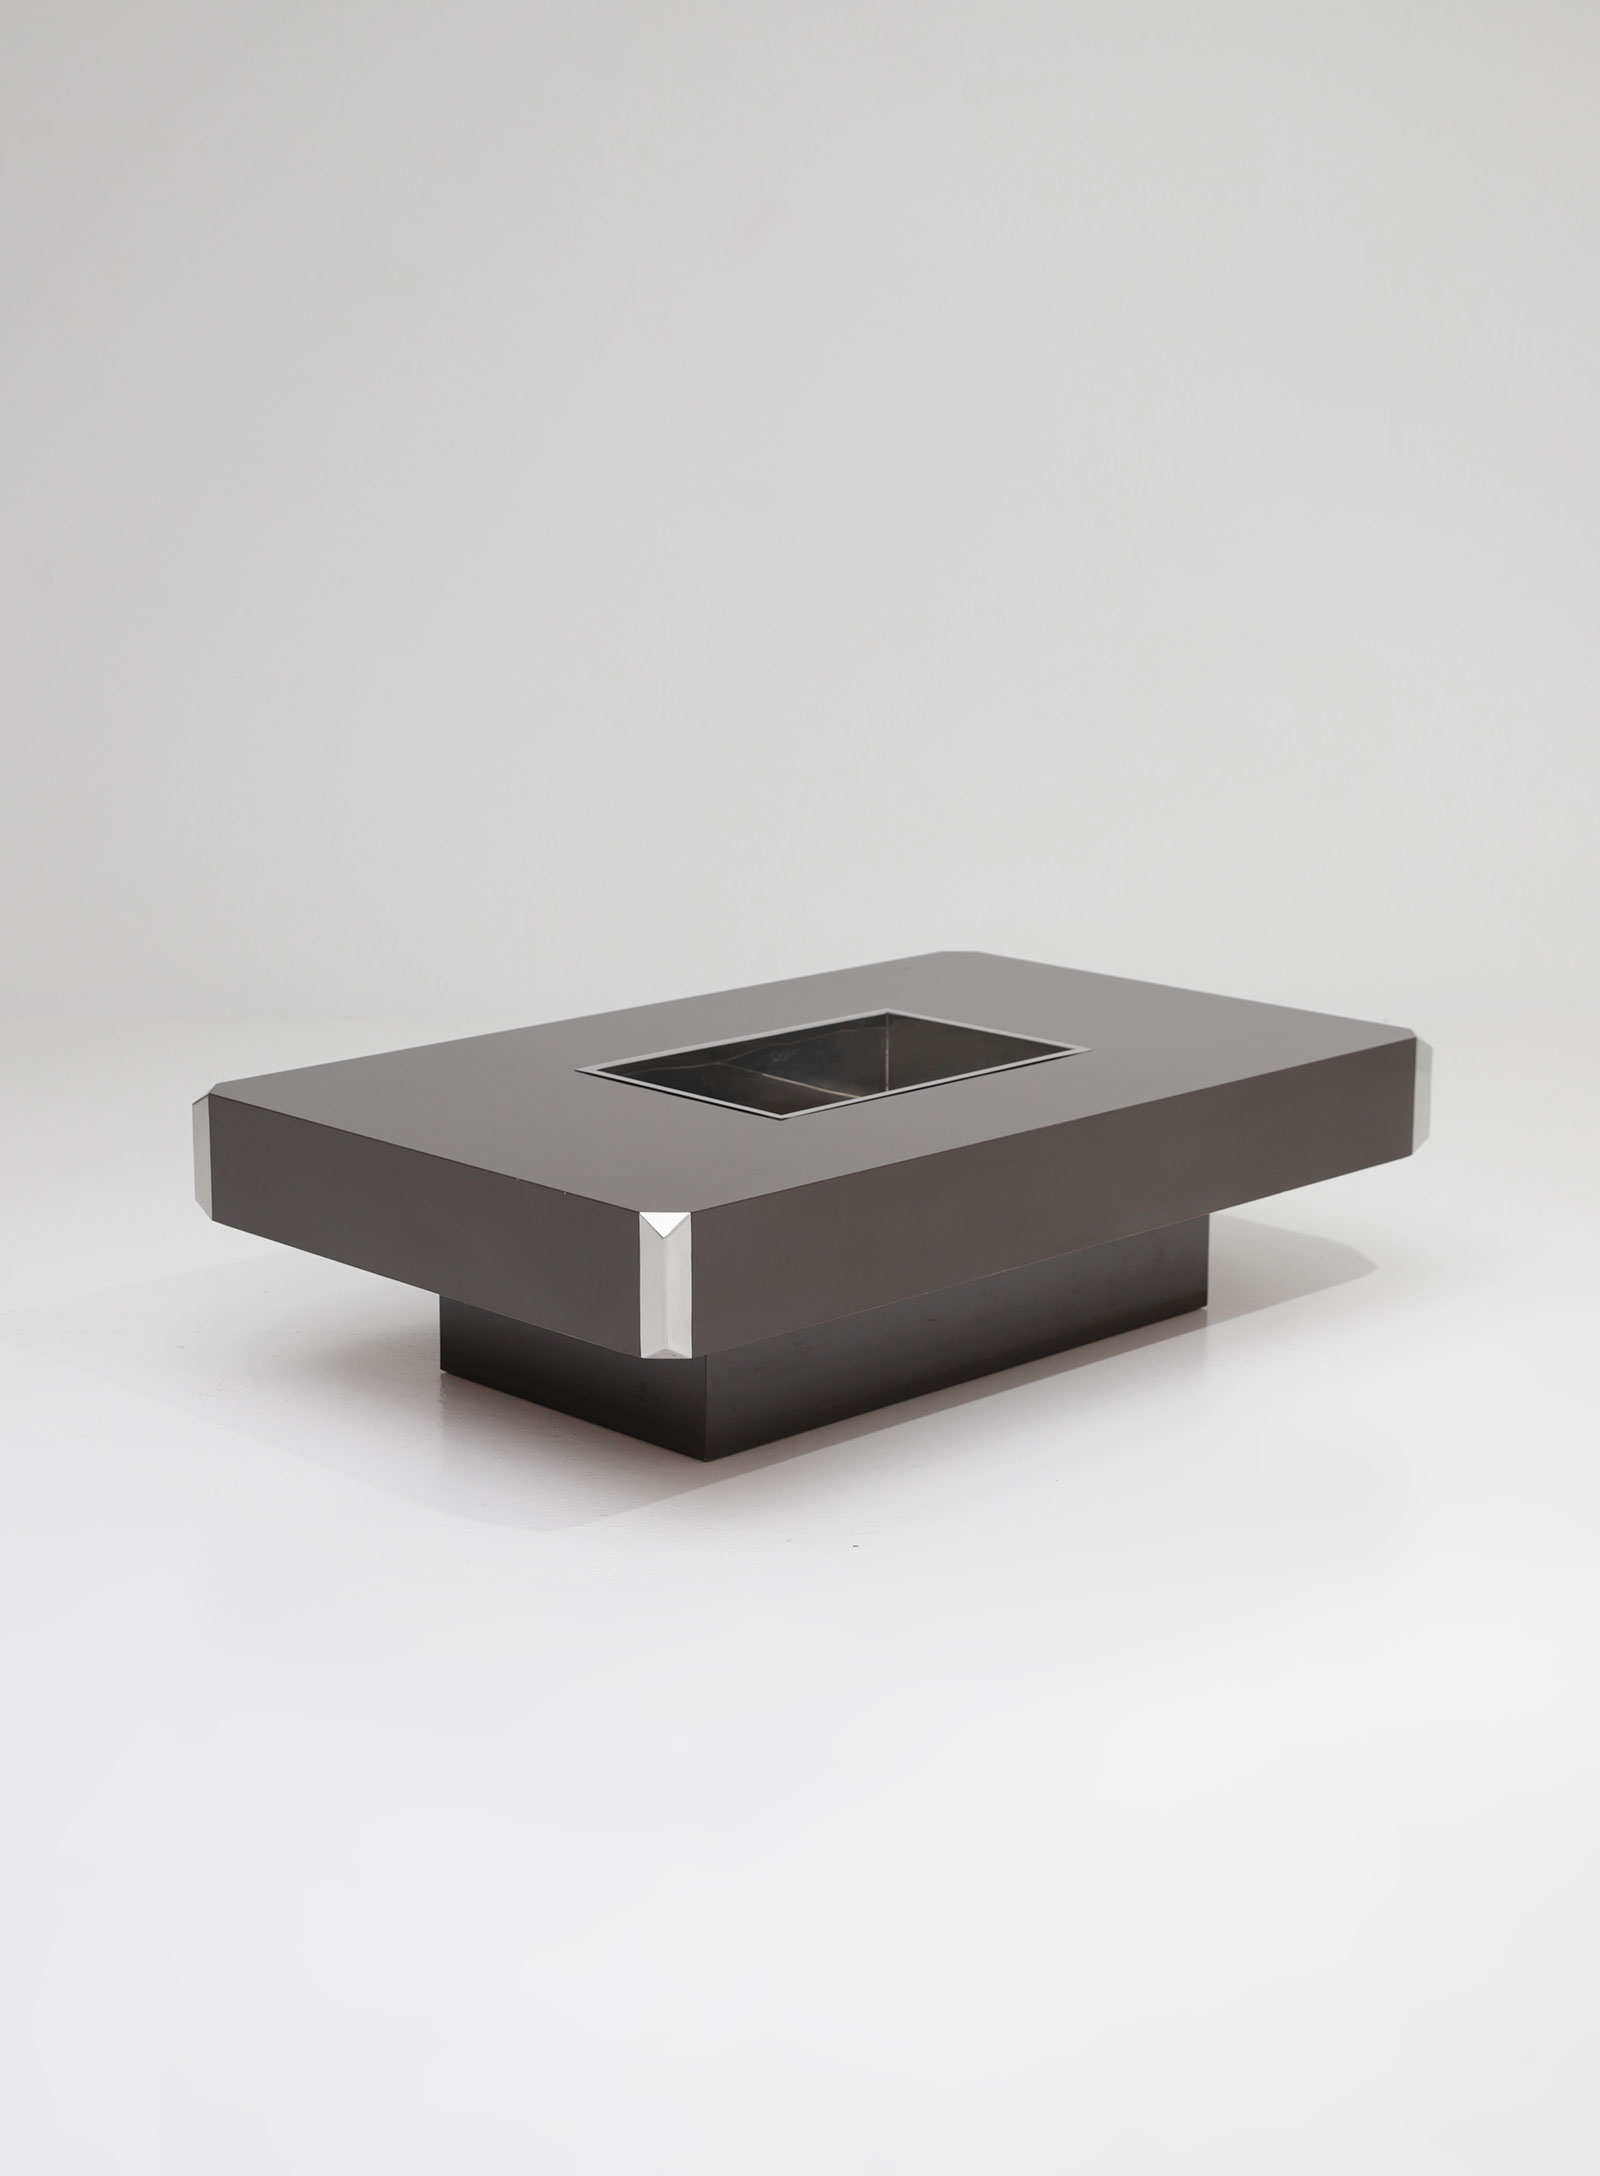 Willy Rizzo Coffee Table for Mario Sabbot 1970simage 1